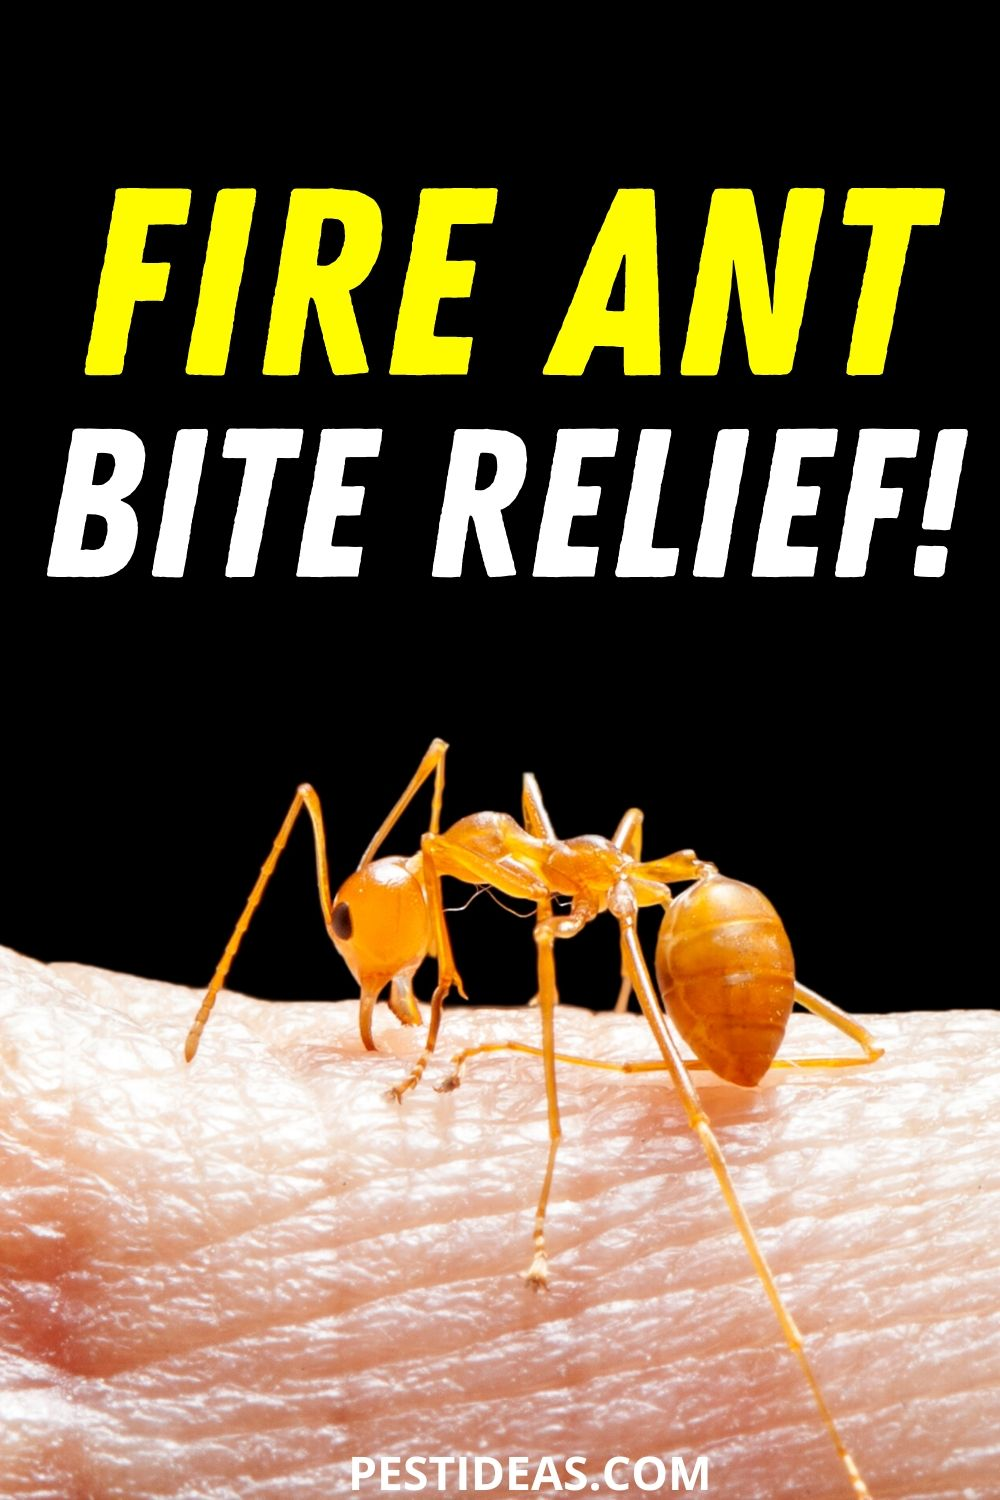 Fire Ant Bite Relief